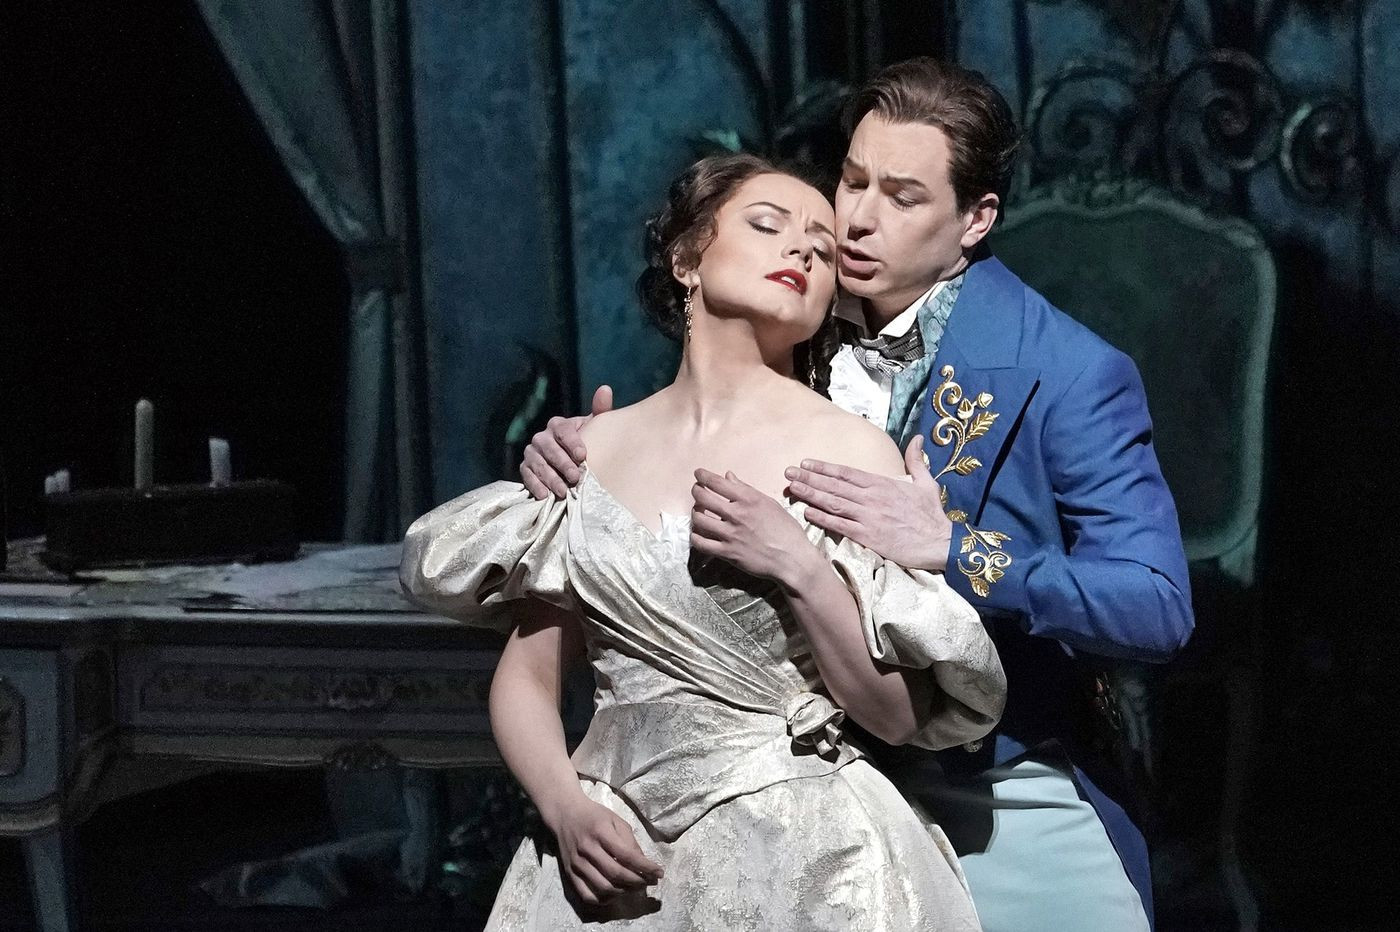 The opera star out of Northeast Philly is back on stage at the Metropolitan Opera